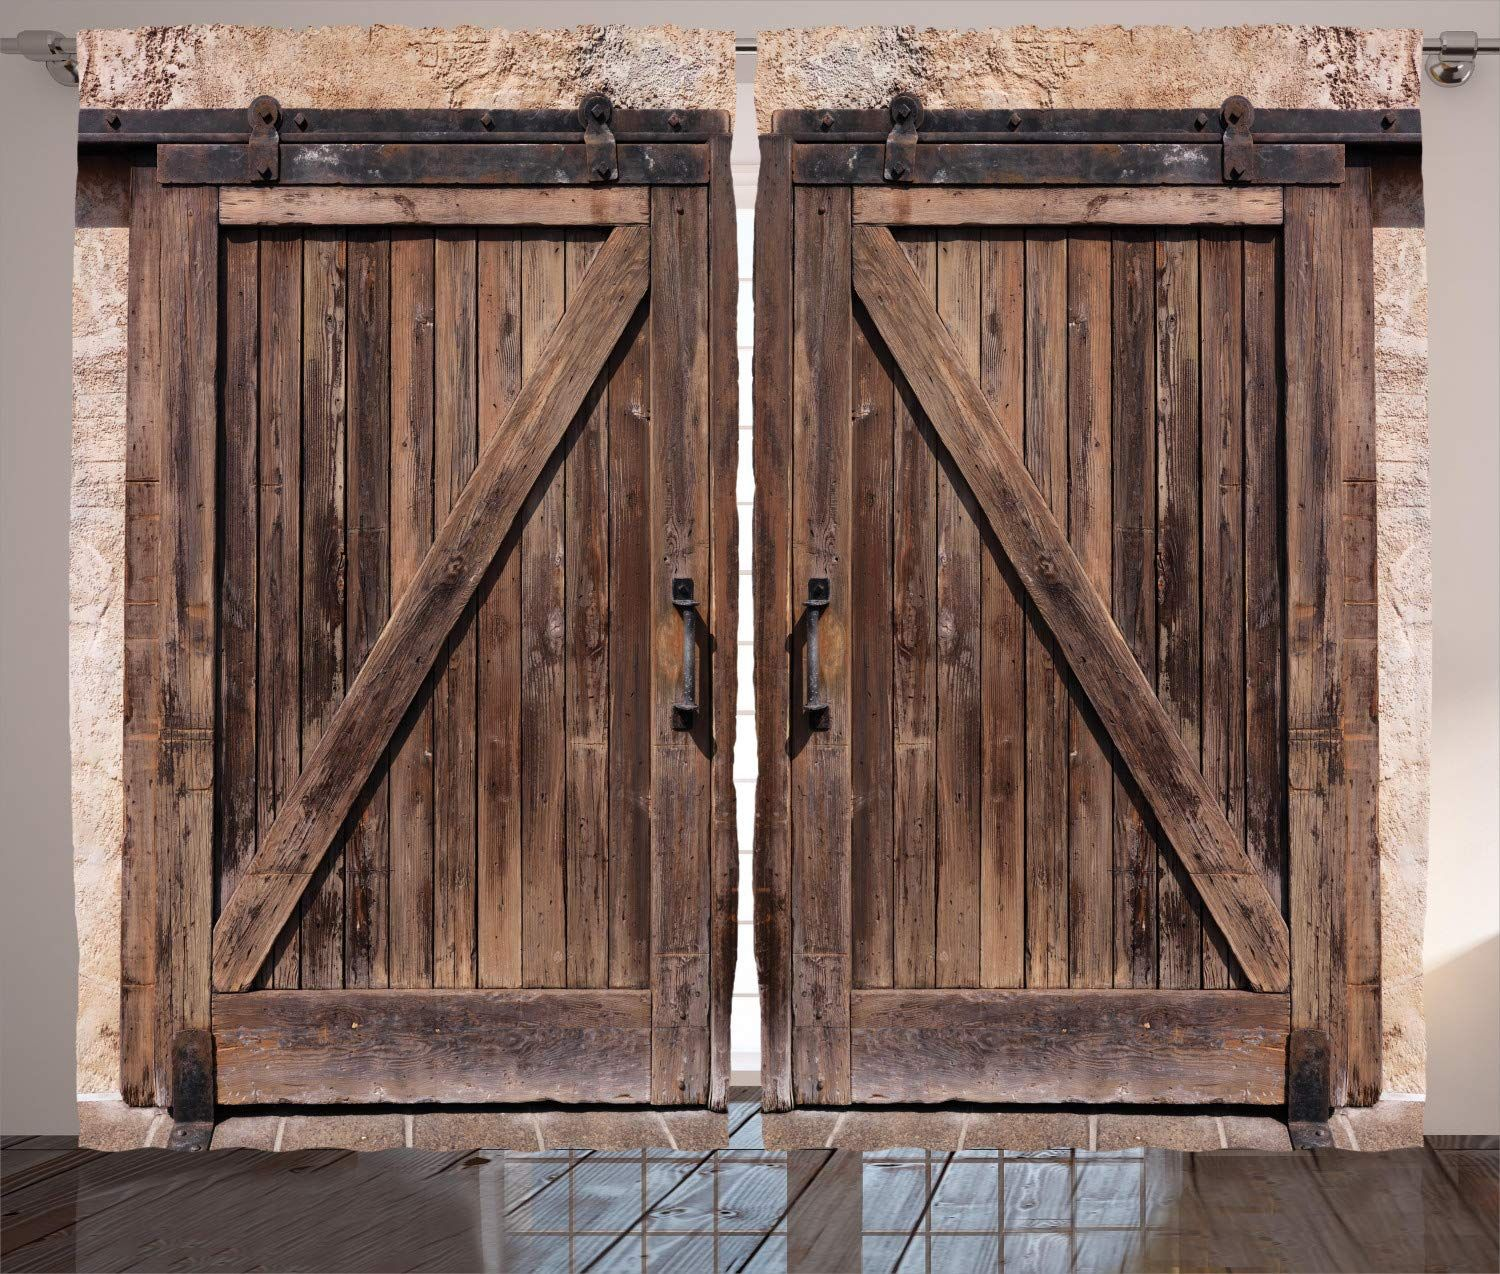 Ambesonne Rustic Curtains Wooden Barn Door In Stone Farmhouse Image Vintage Desgin Rural Art Architecture In 2020 Wooden Barn Doors Wooden Barn Rustic Shower Curtains